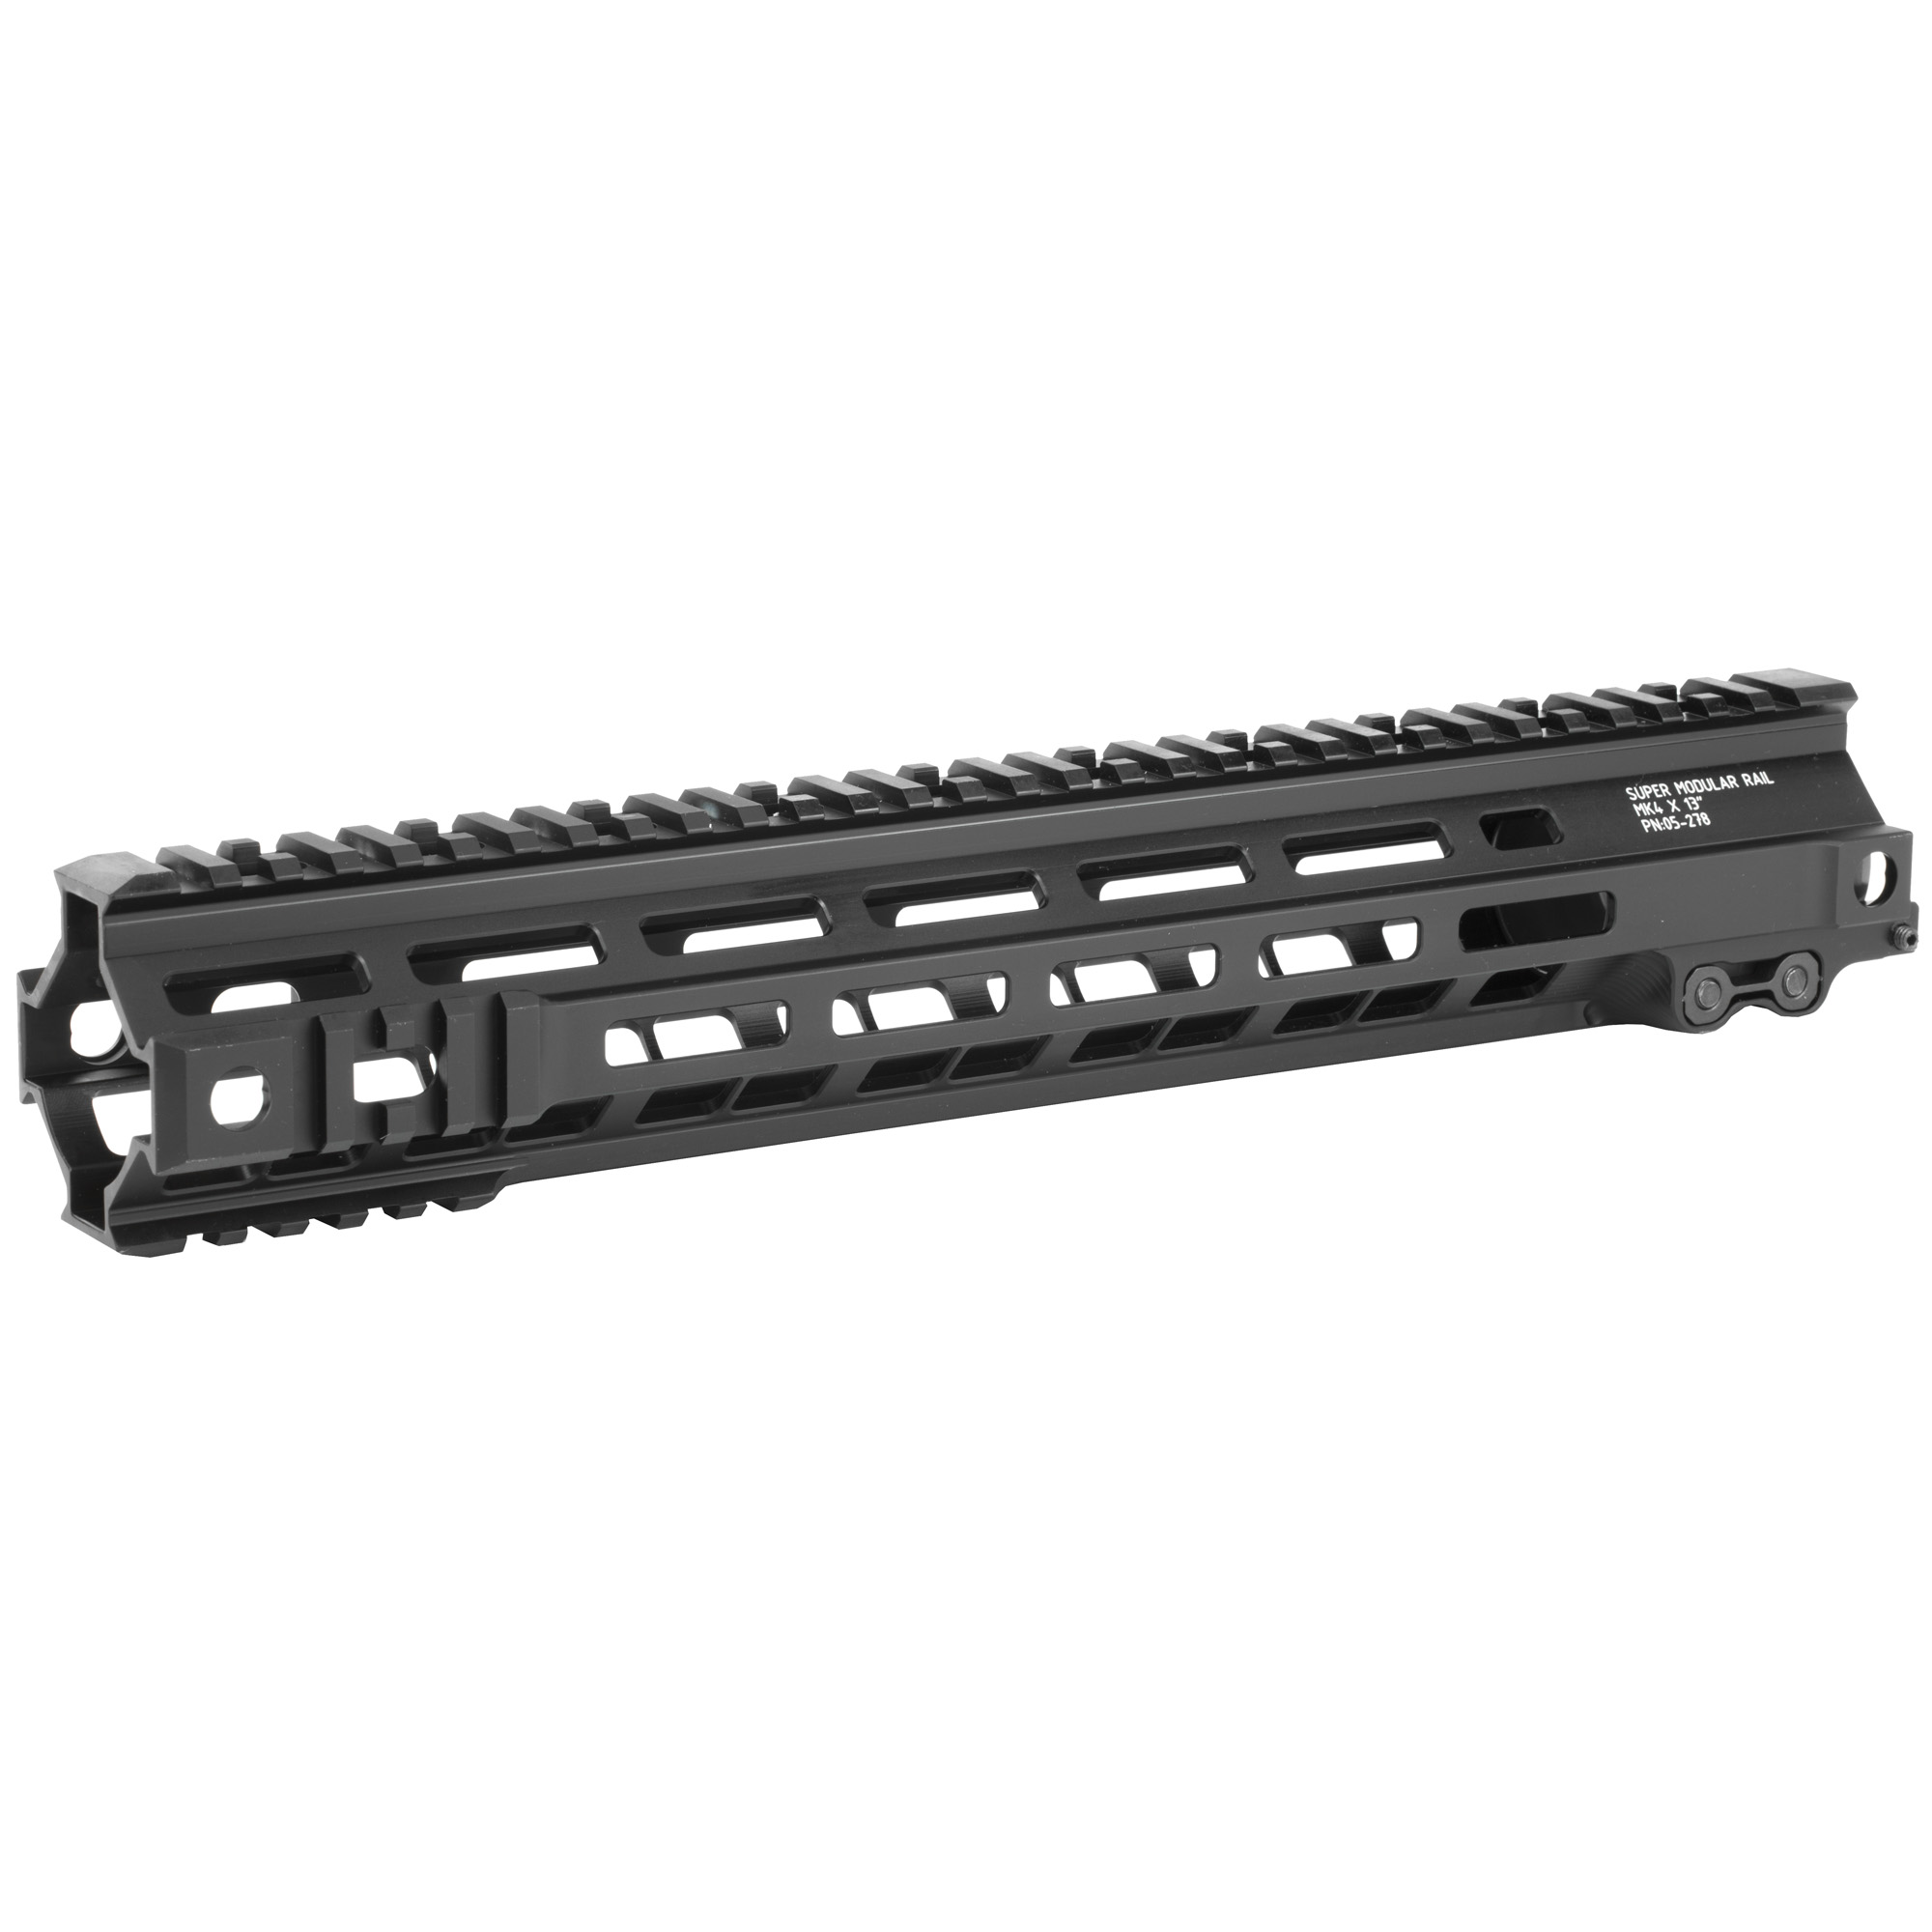 """The Super Modular 13"""" Rail (SMR) MK4 M-LOK(TM) is Geissele's ultra-lightweight M-LOK option. These rails are purpose-built and feature integrated M1913 picatinny rail sections at the fore of the rail in the 3"""" 6 and 9 o'clock positions. Maximum venting for heat dissipation also dramatically reduces the rail's overall weight"""" while maintaining its same strong and rigid platform. Utilizing Magpul's M-LOK technology at the 3"""" 6"""" and 9 o'clock positions"""" as well as the upper 45 quadrants. The SMR MK4 is both versatile and modular"""" allowing the user to tailor their platform to his or her unique needs. The SMR MK4 also features Geissele's proprietary 2.25"""" long barrel nut. This increases the surface contact where the rail interfaces with the receiver and creates a platform that can be trusted to be straight and true the entire length of the free float rail. This increases accuracy and zero repeatability during disassembly and reassembly when performing maintenance."""